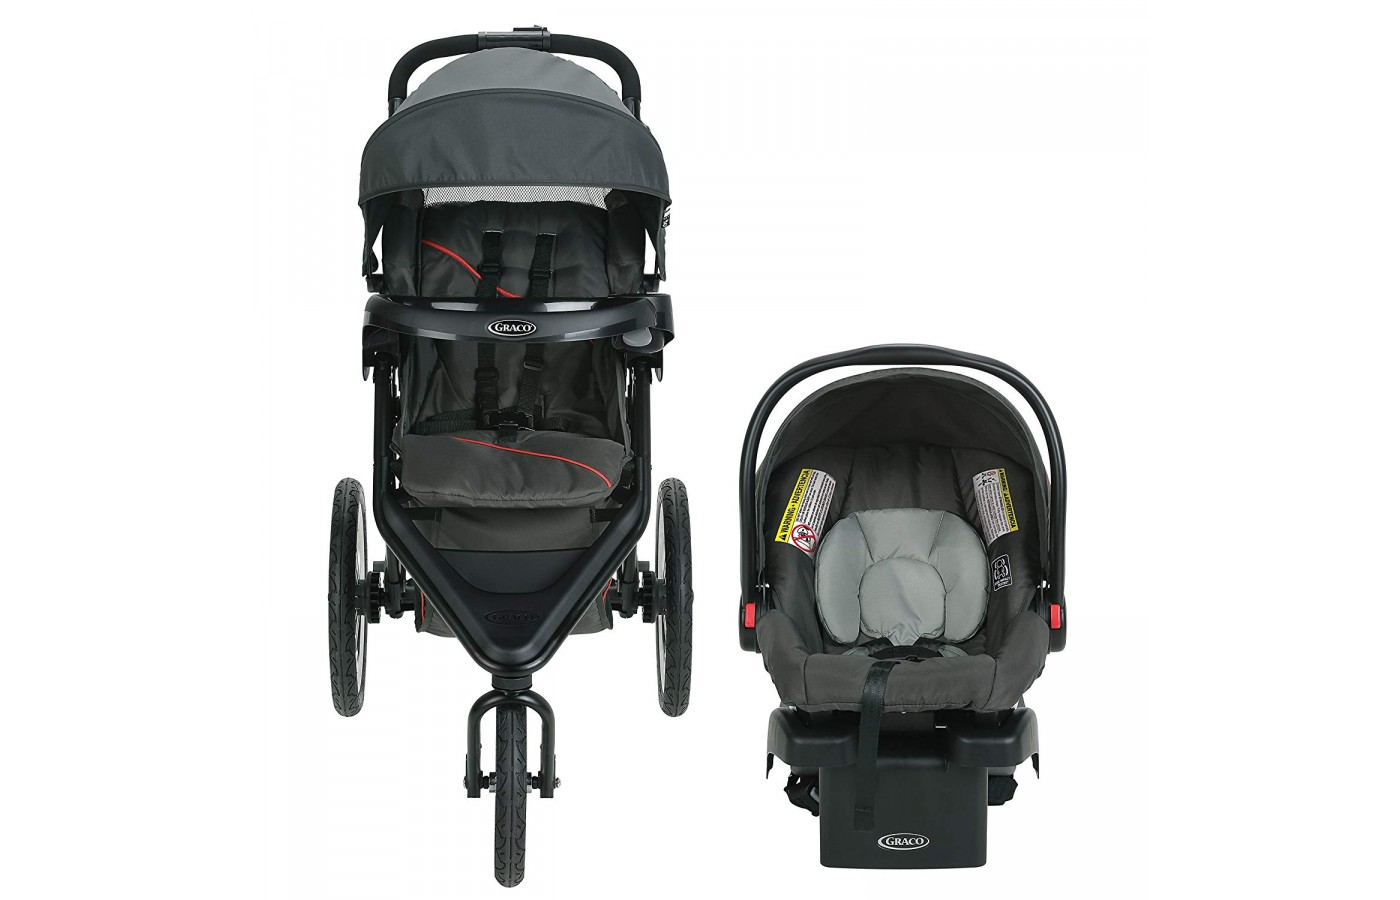 Car Seat Stroller Travel System Reviews Graco Trax Jogger Review